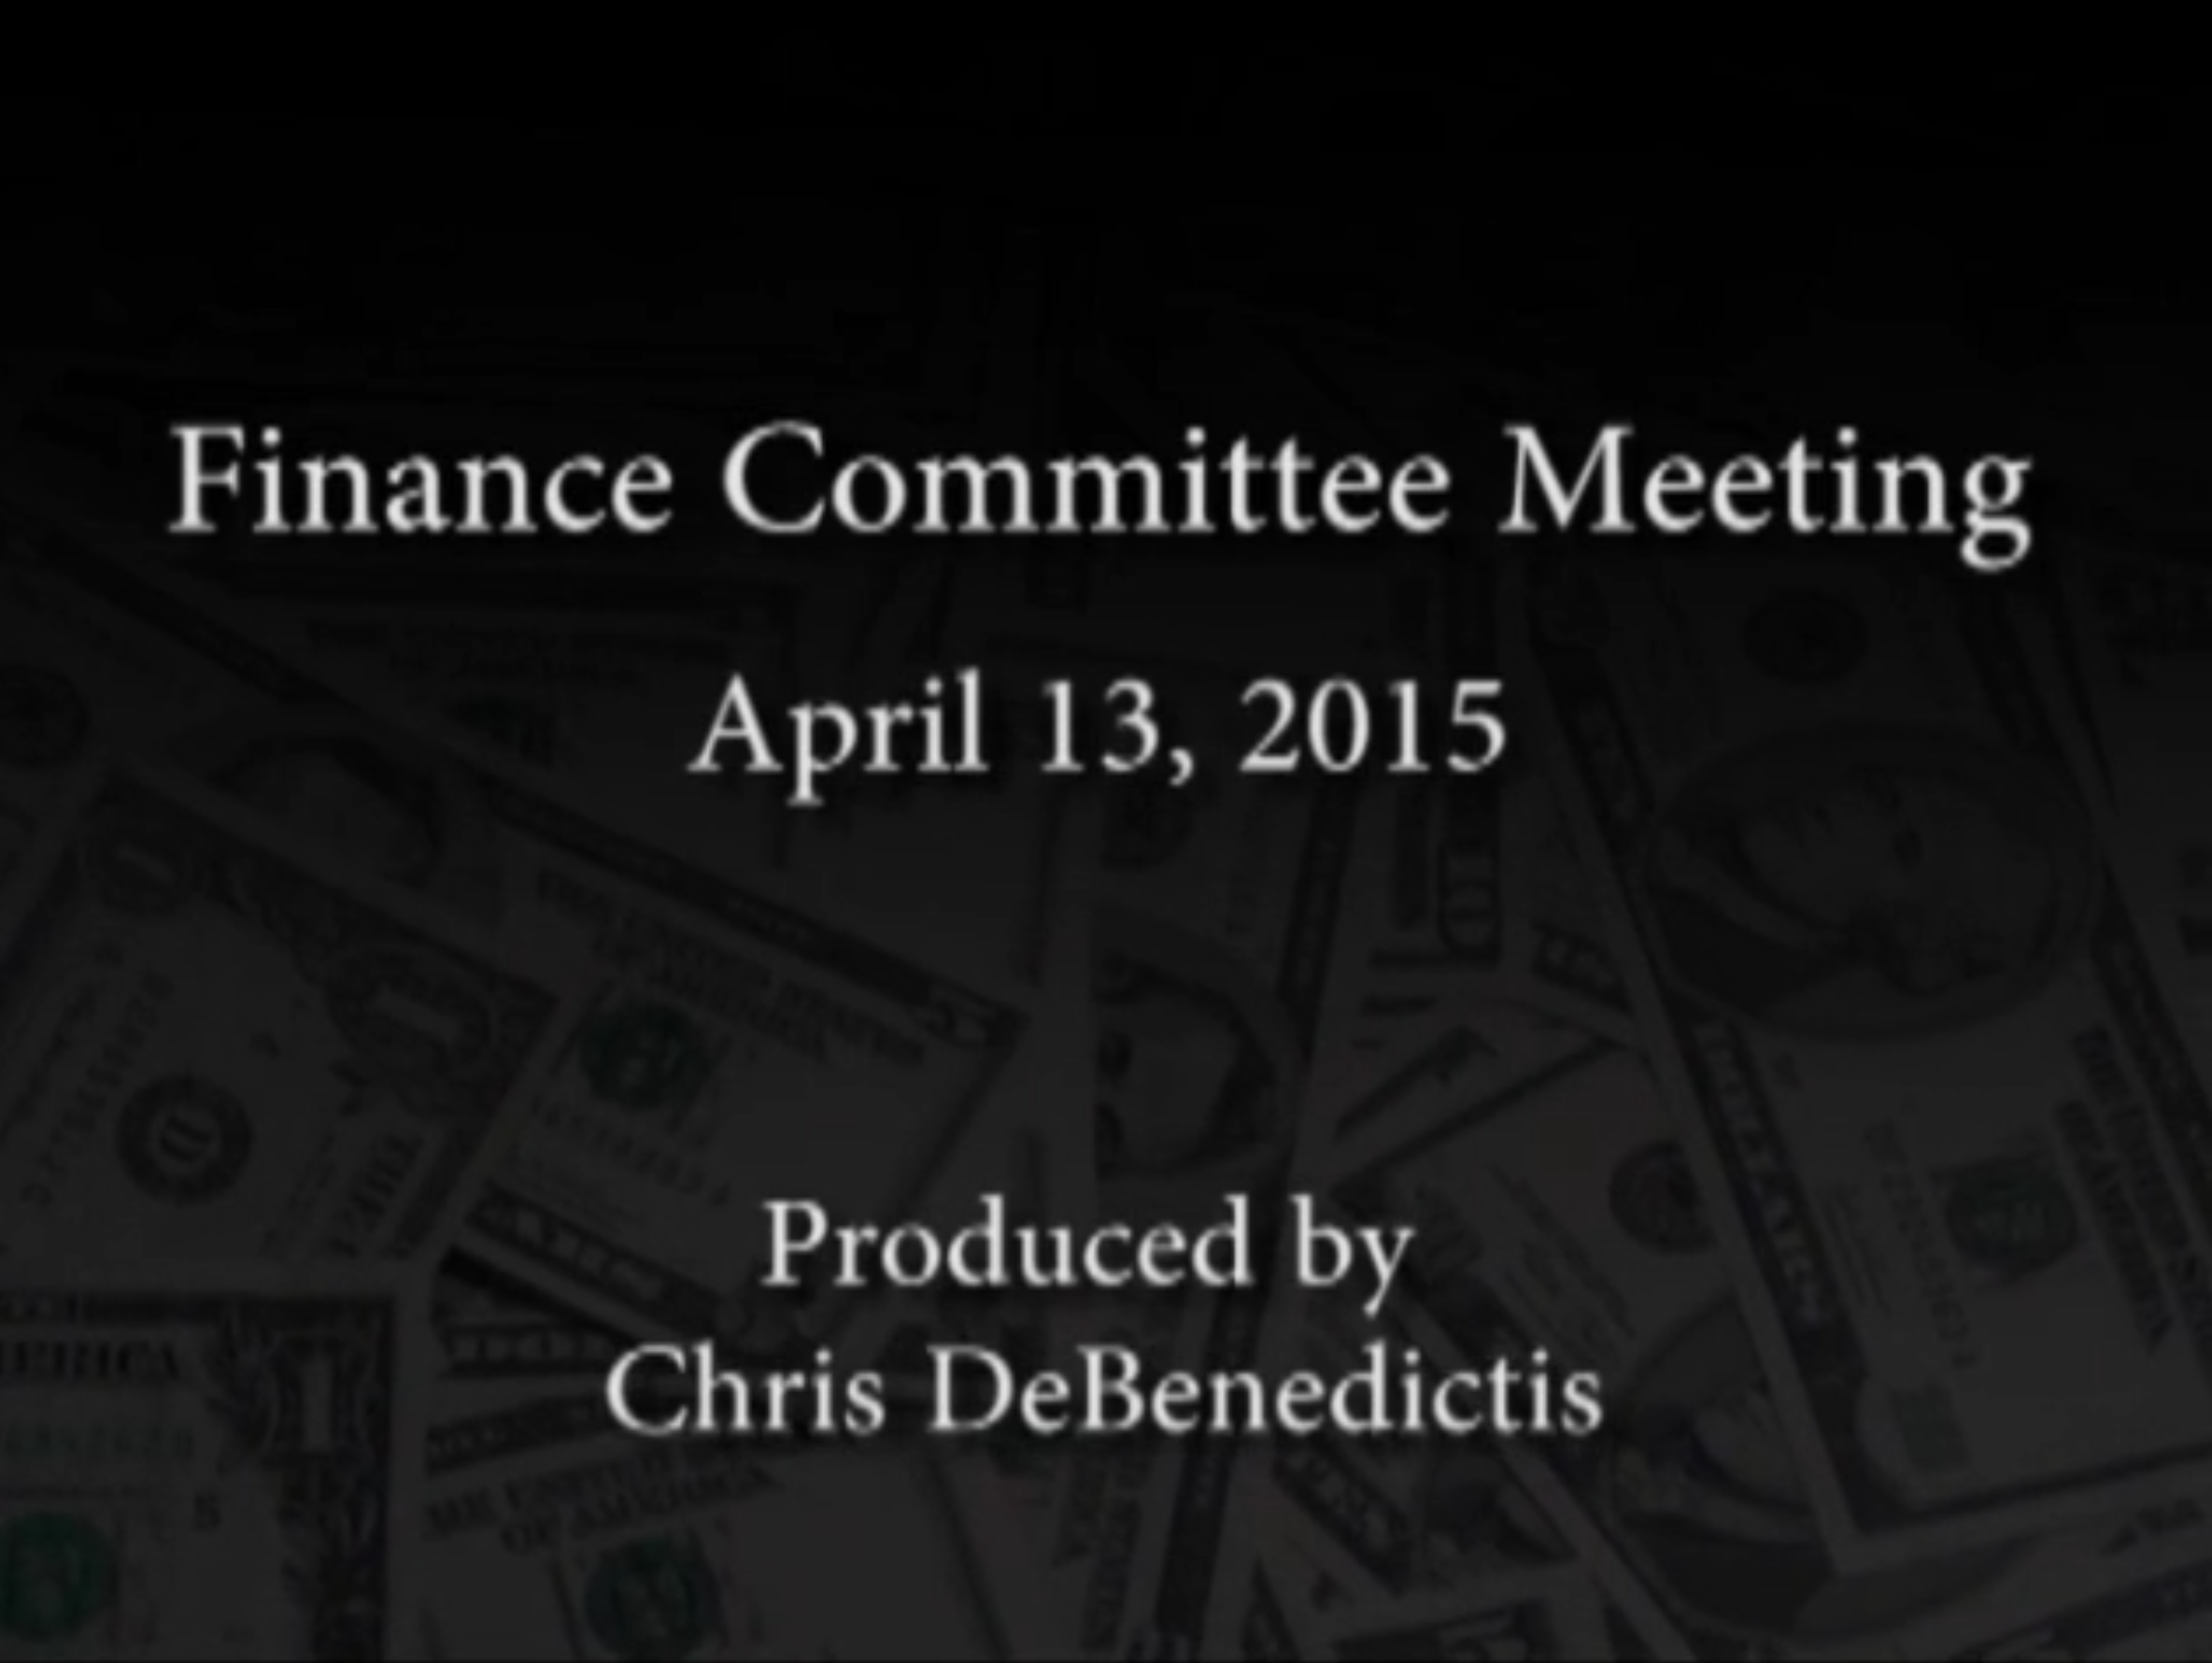 Finance Committee Meeting – April 13, 2015